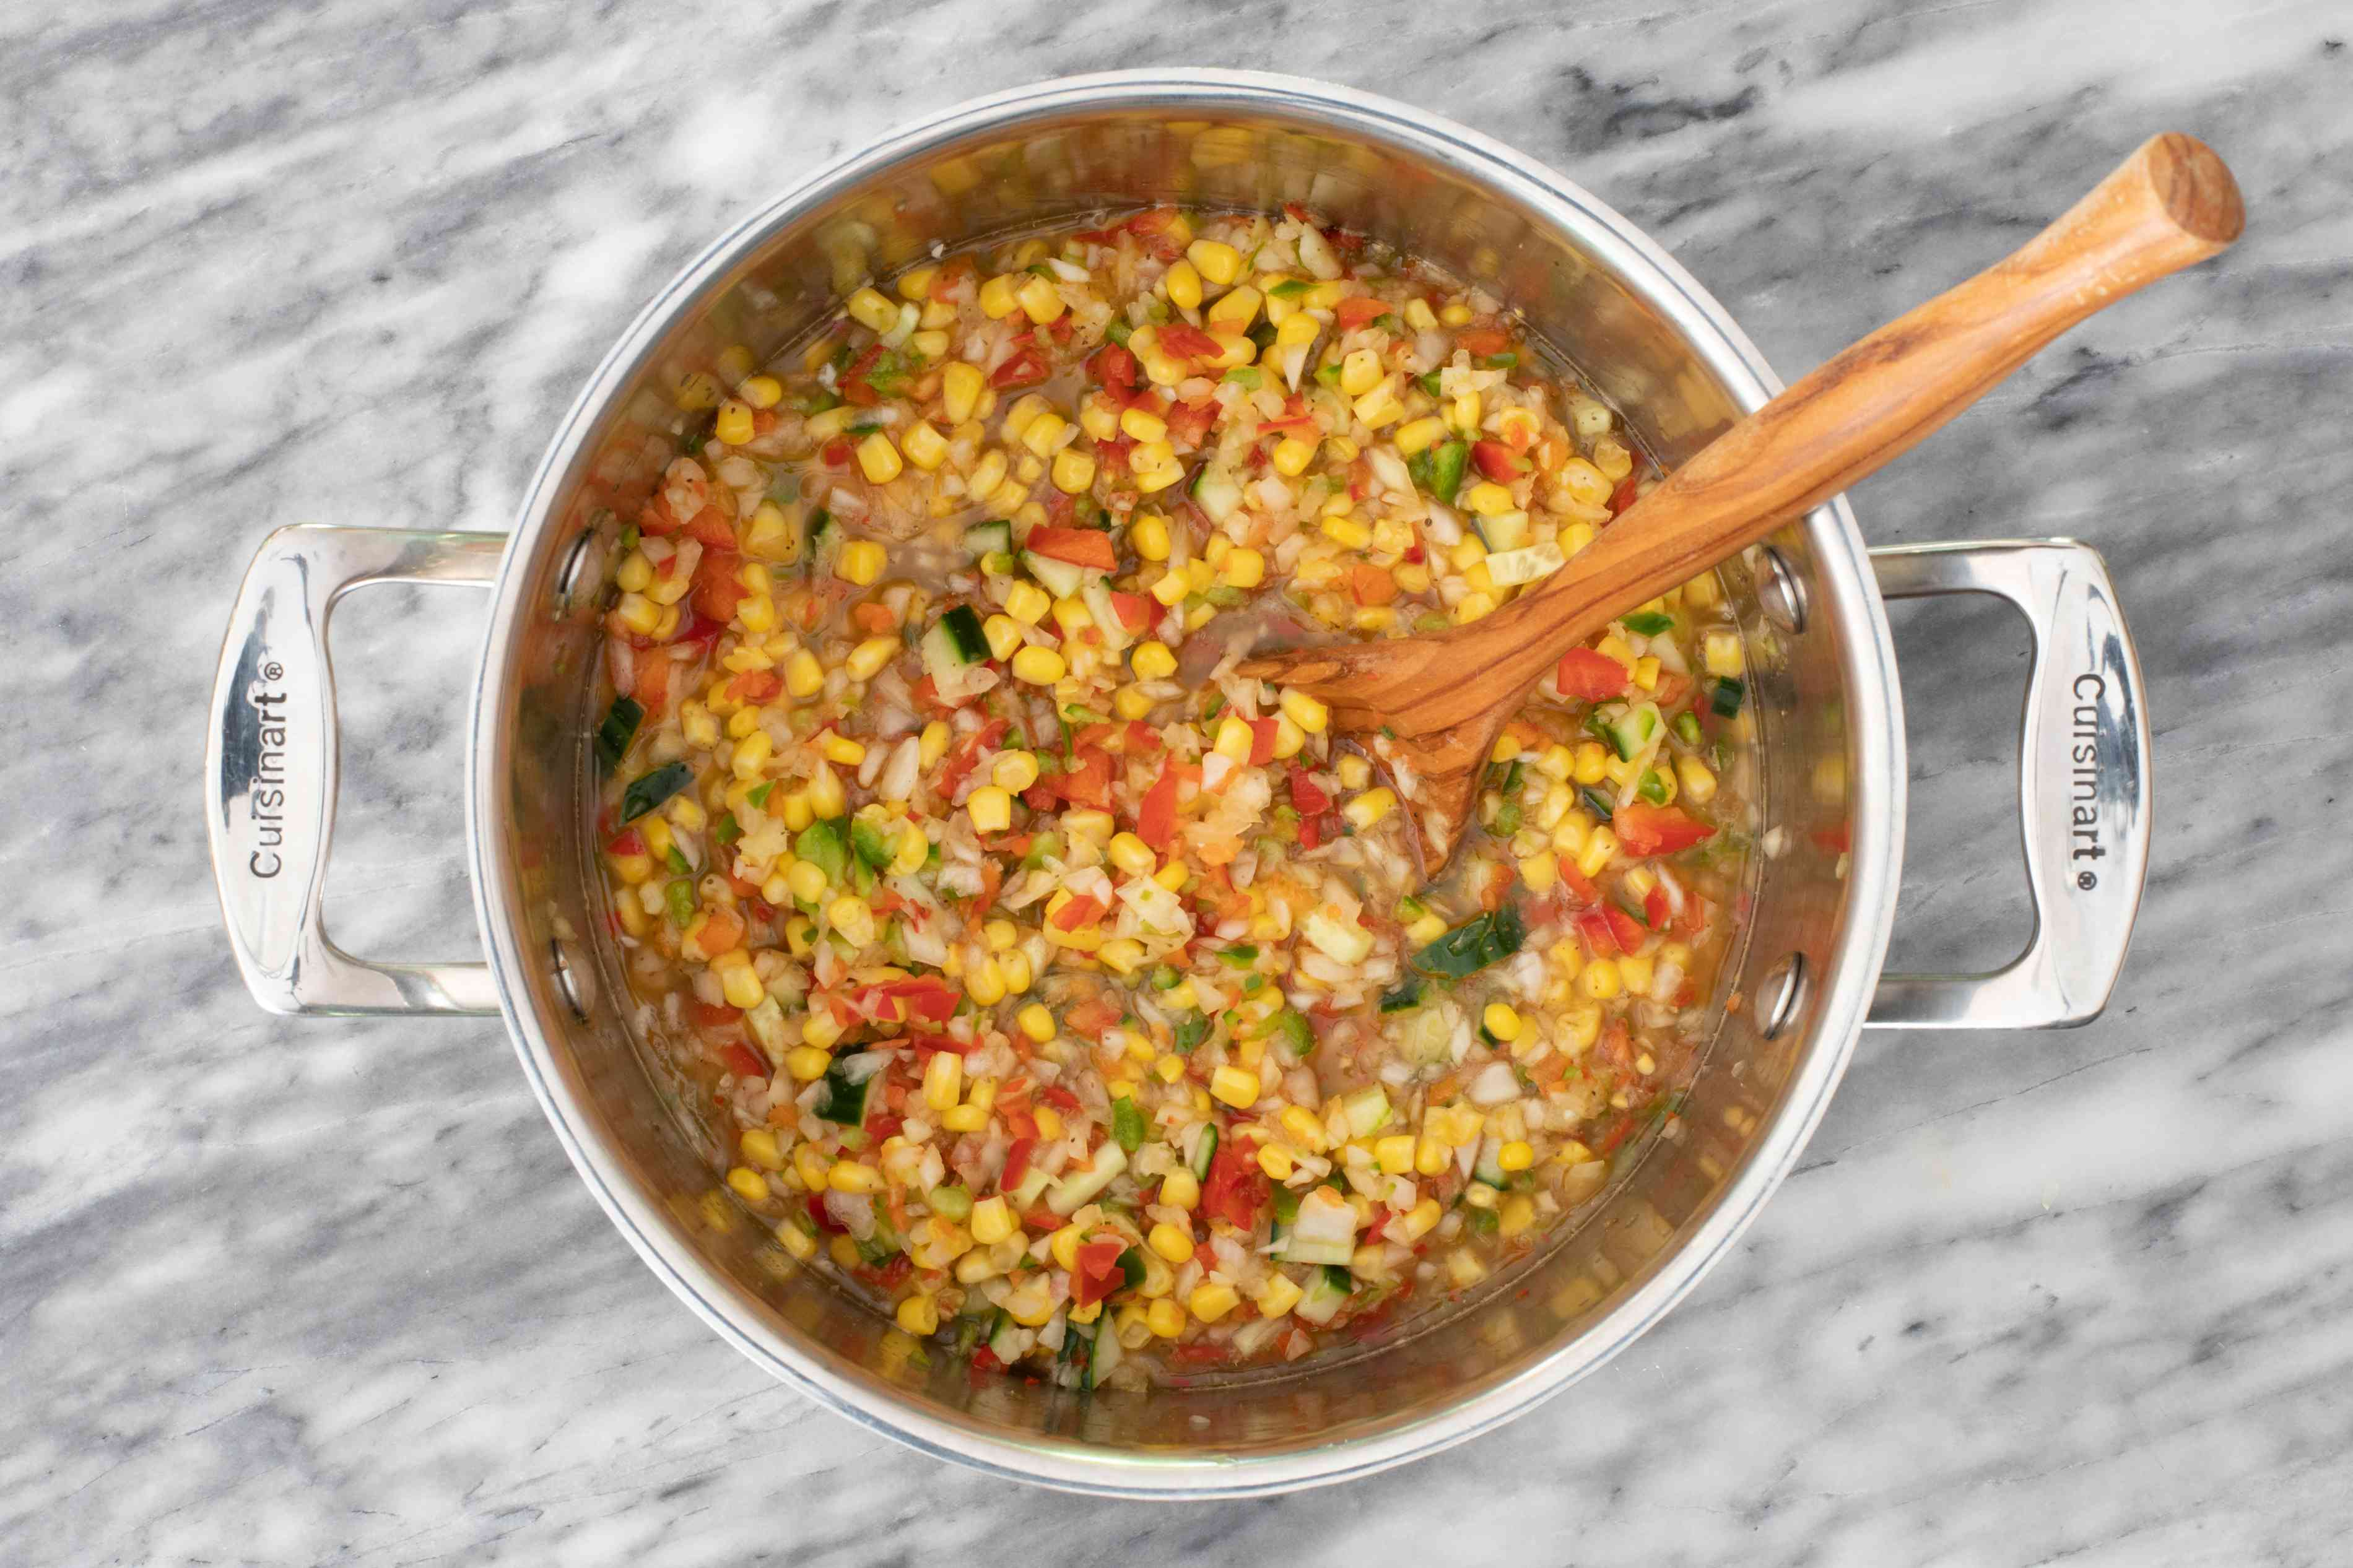 Combine the corn and other ingredients in a stockpot.